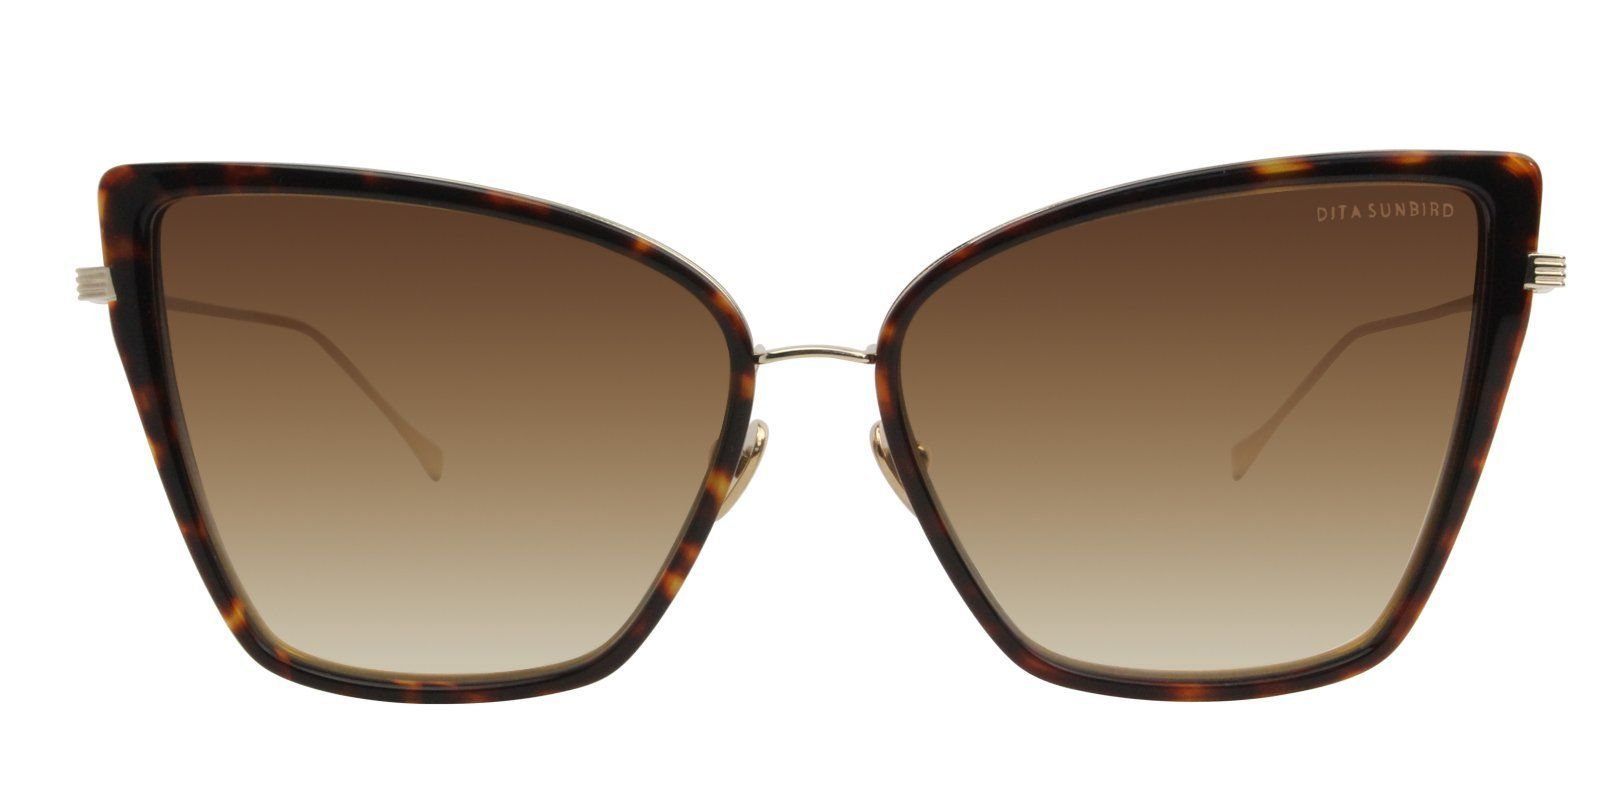 3d2d3617db Dita - Sunbird Tortoise - Brown sunglasses– Designer Eyes